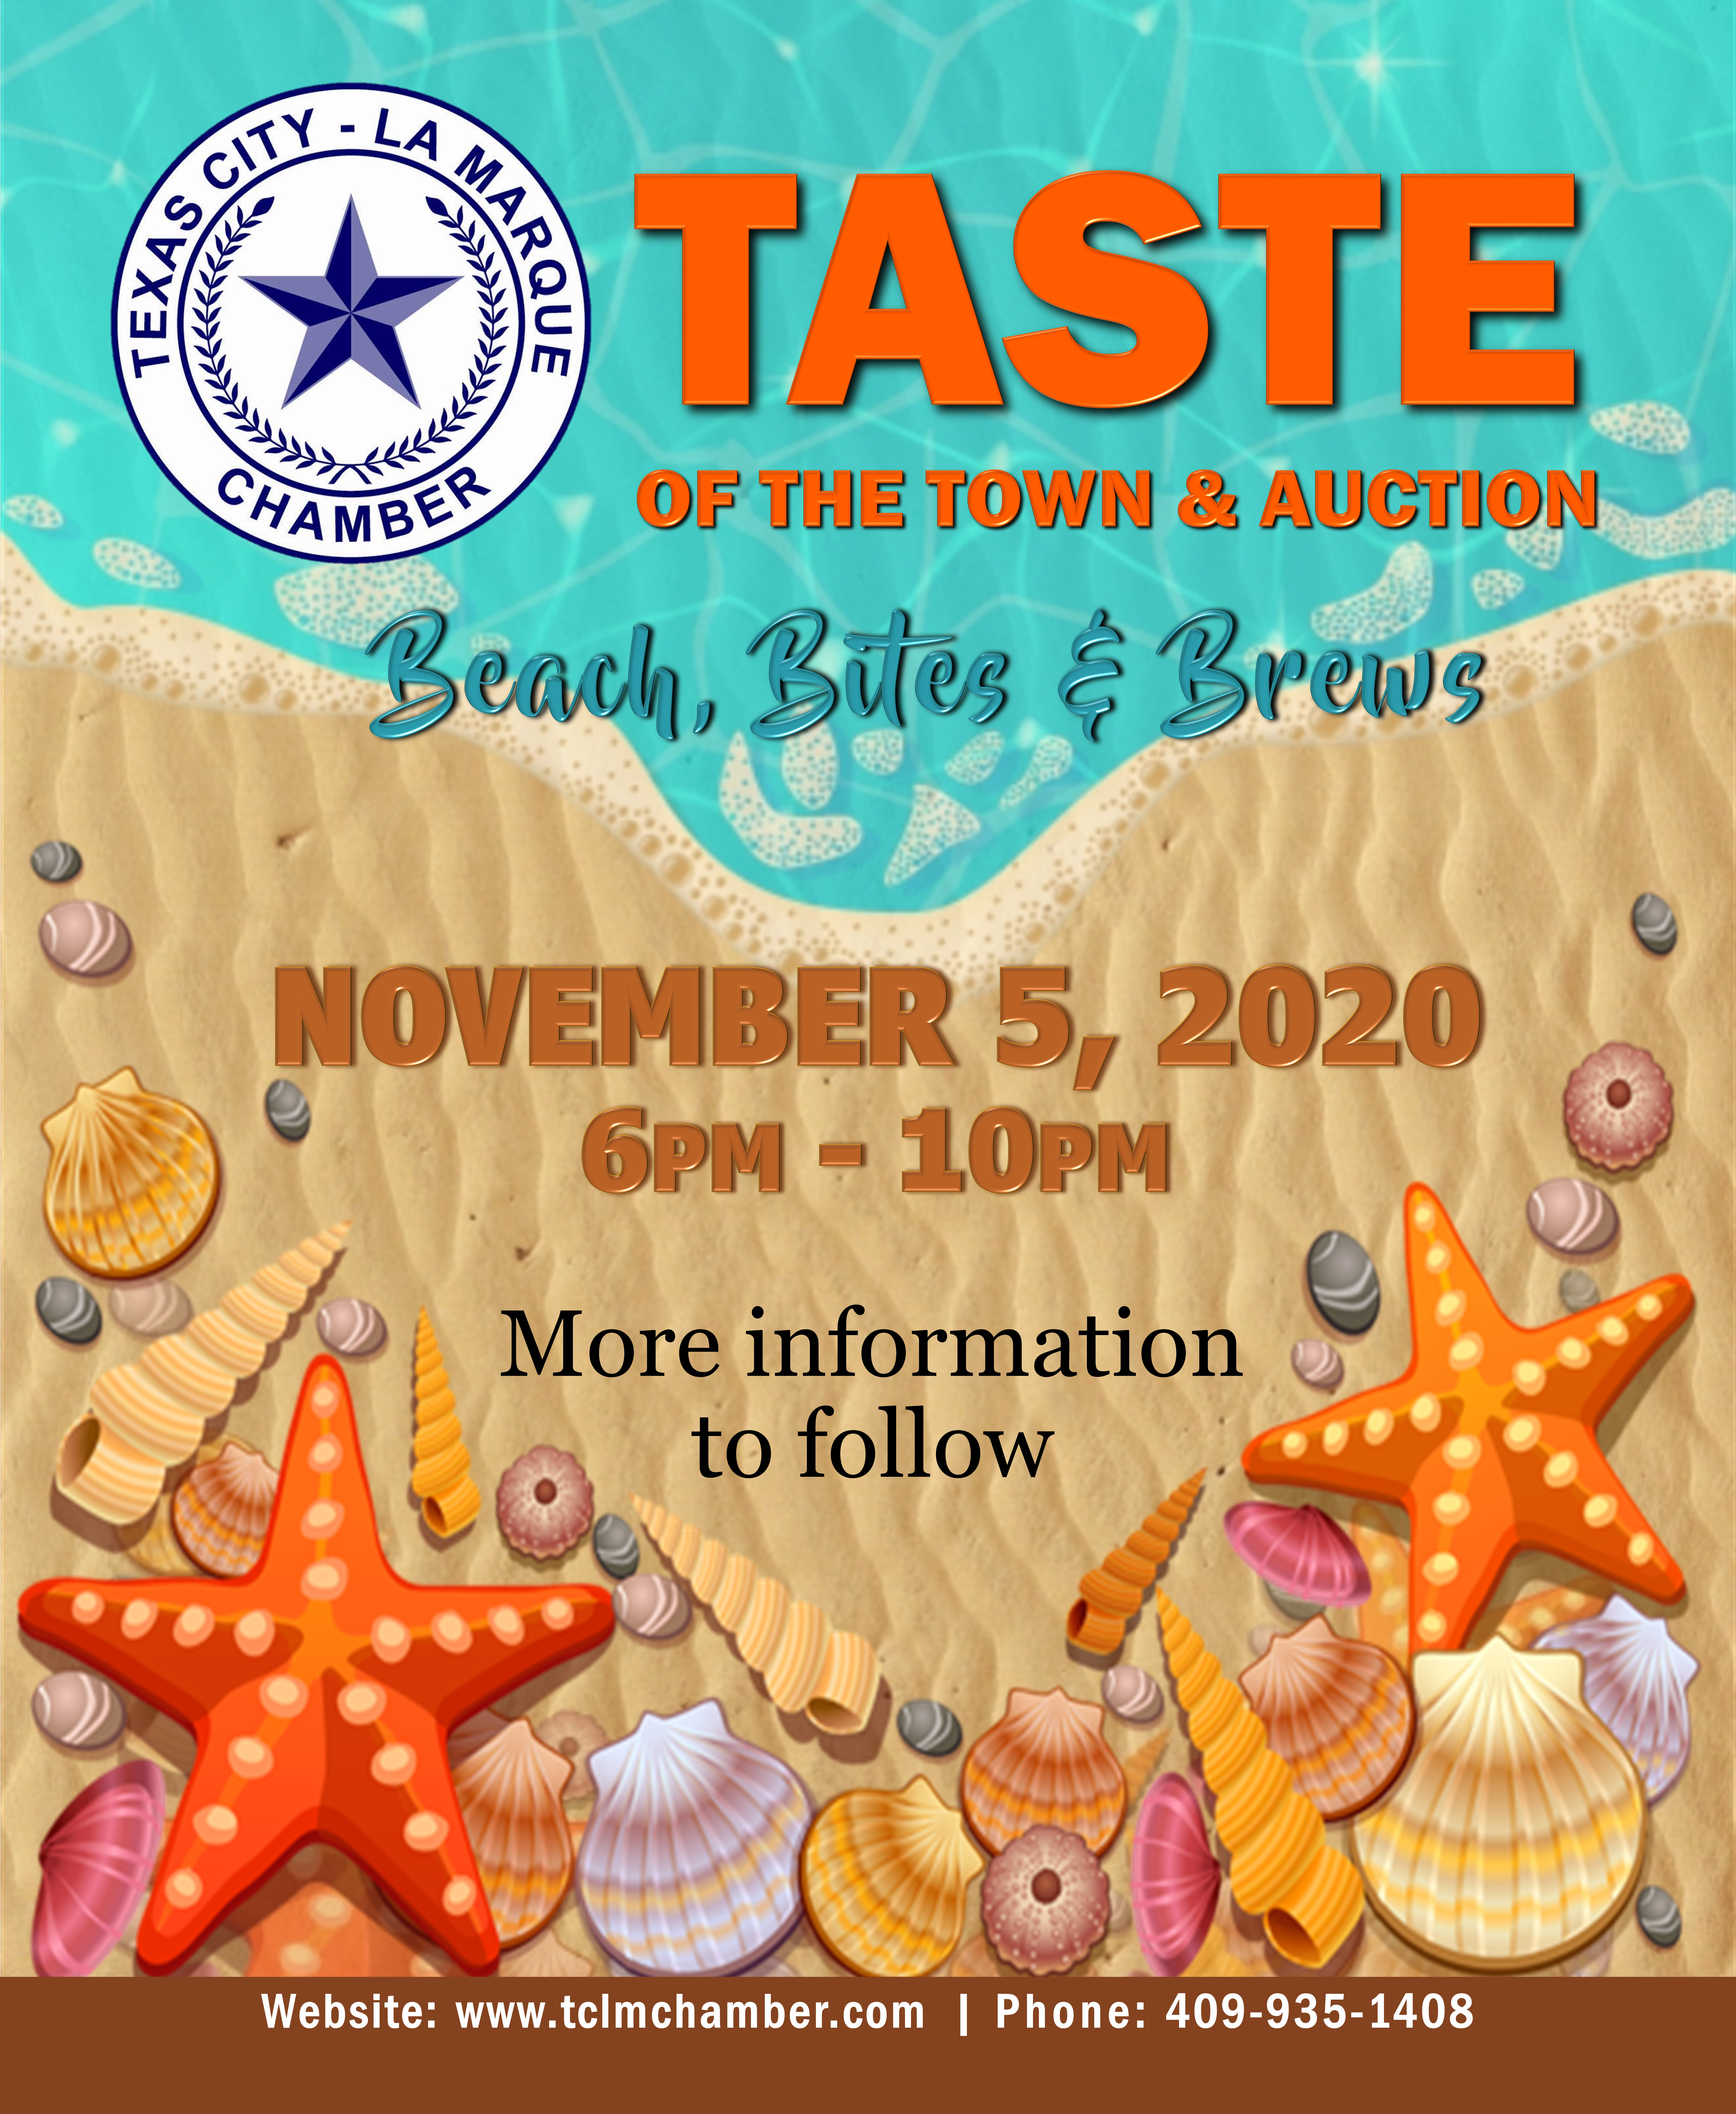 Coast Magazine Ad for Taste of the Town 2020